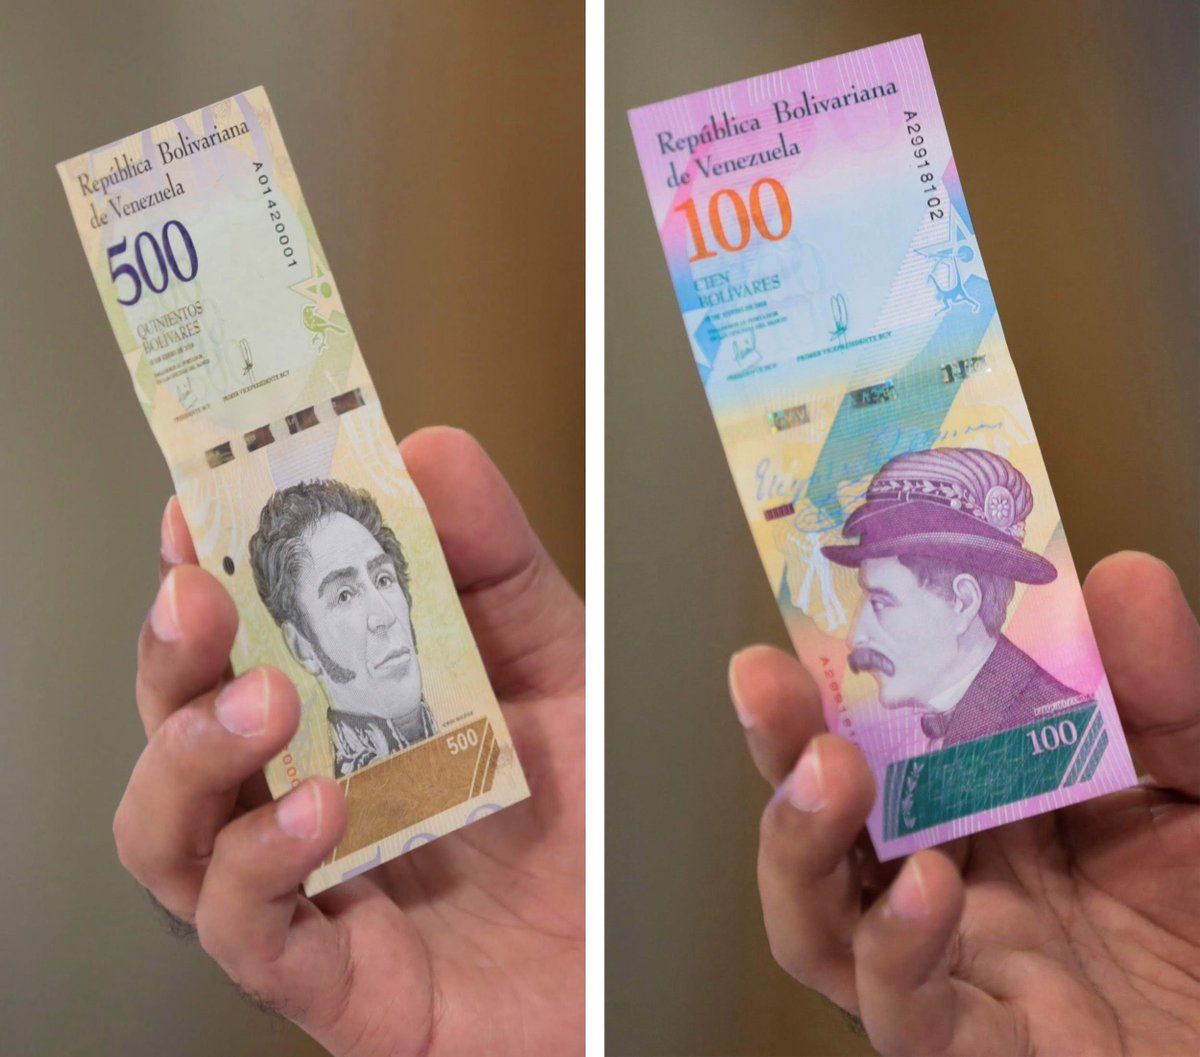 Inflation could hit 1,000,000% in Venezuela - so it&#39;s slashed five zeros from its currency  https:// wef.ch/2LwiWaa  &nbsp;   #economics<br>http://pic.twitter.com/adozkbyksk